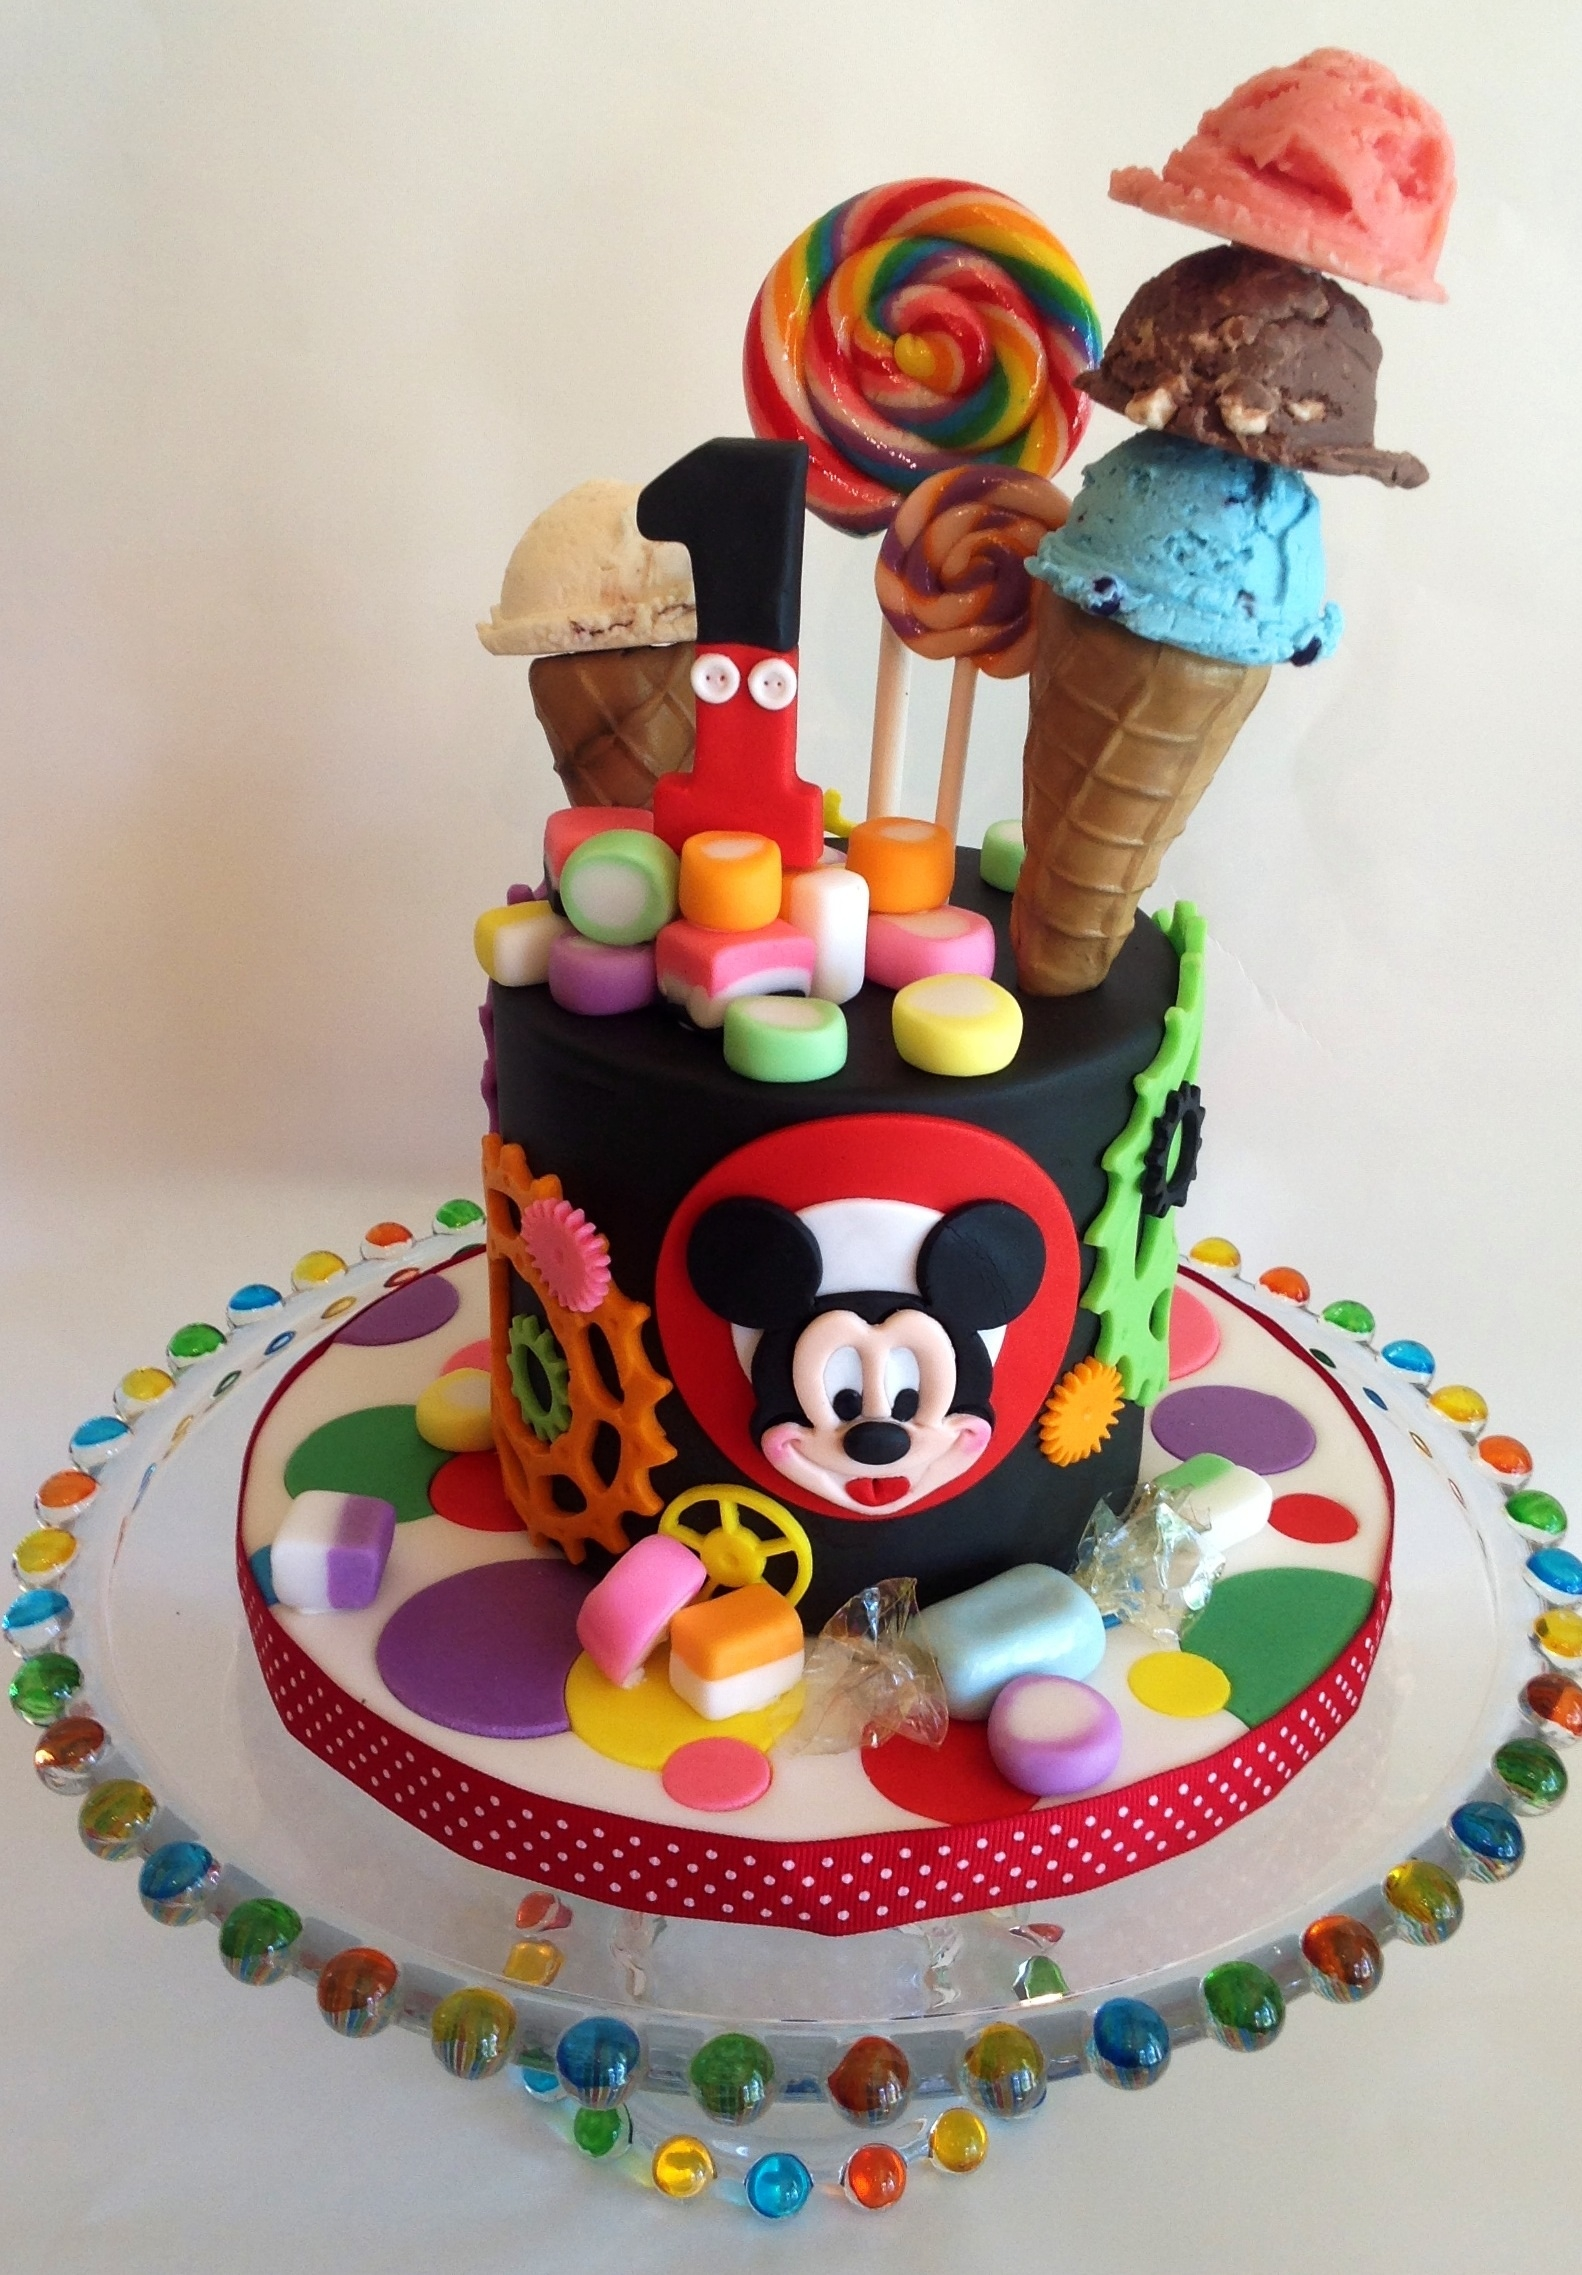 Ice Cream Cake Edible Image : All Decorations Edible Art Including Ice Cream Cupcakes ...